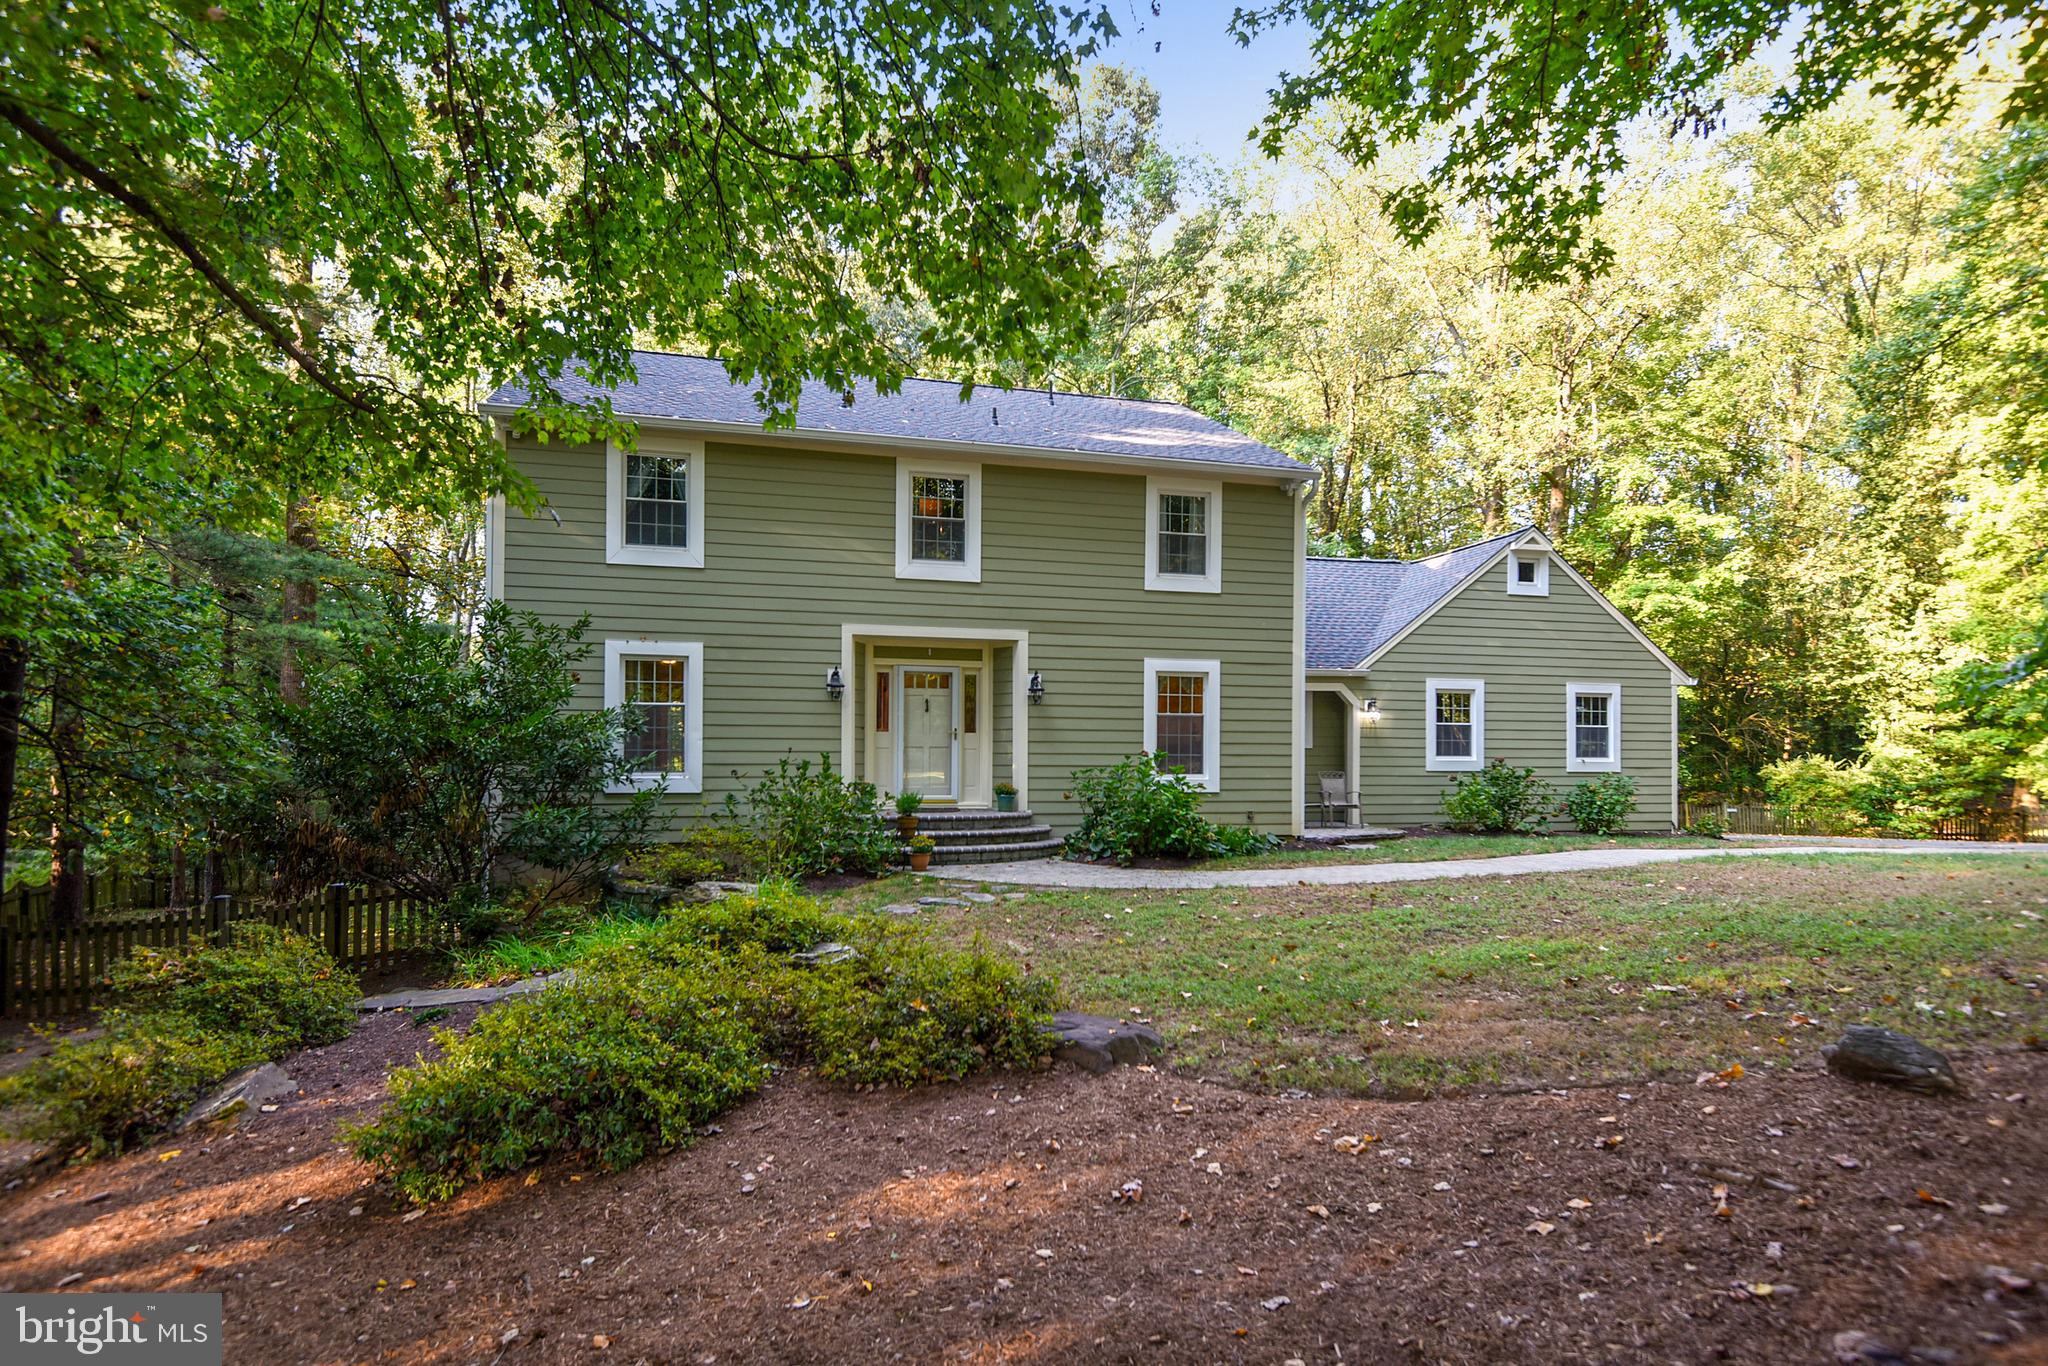 Elegance starts at the curb with this beautiful Saltbox Colonial in the sought-after neighborhood of